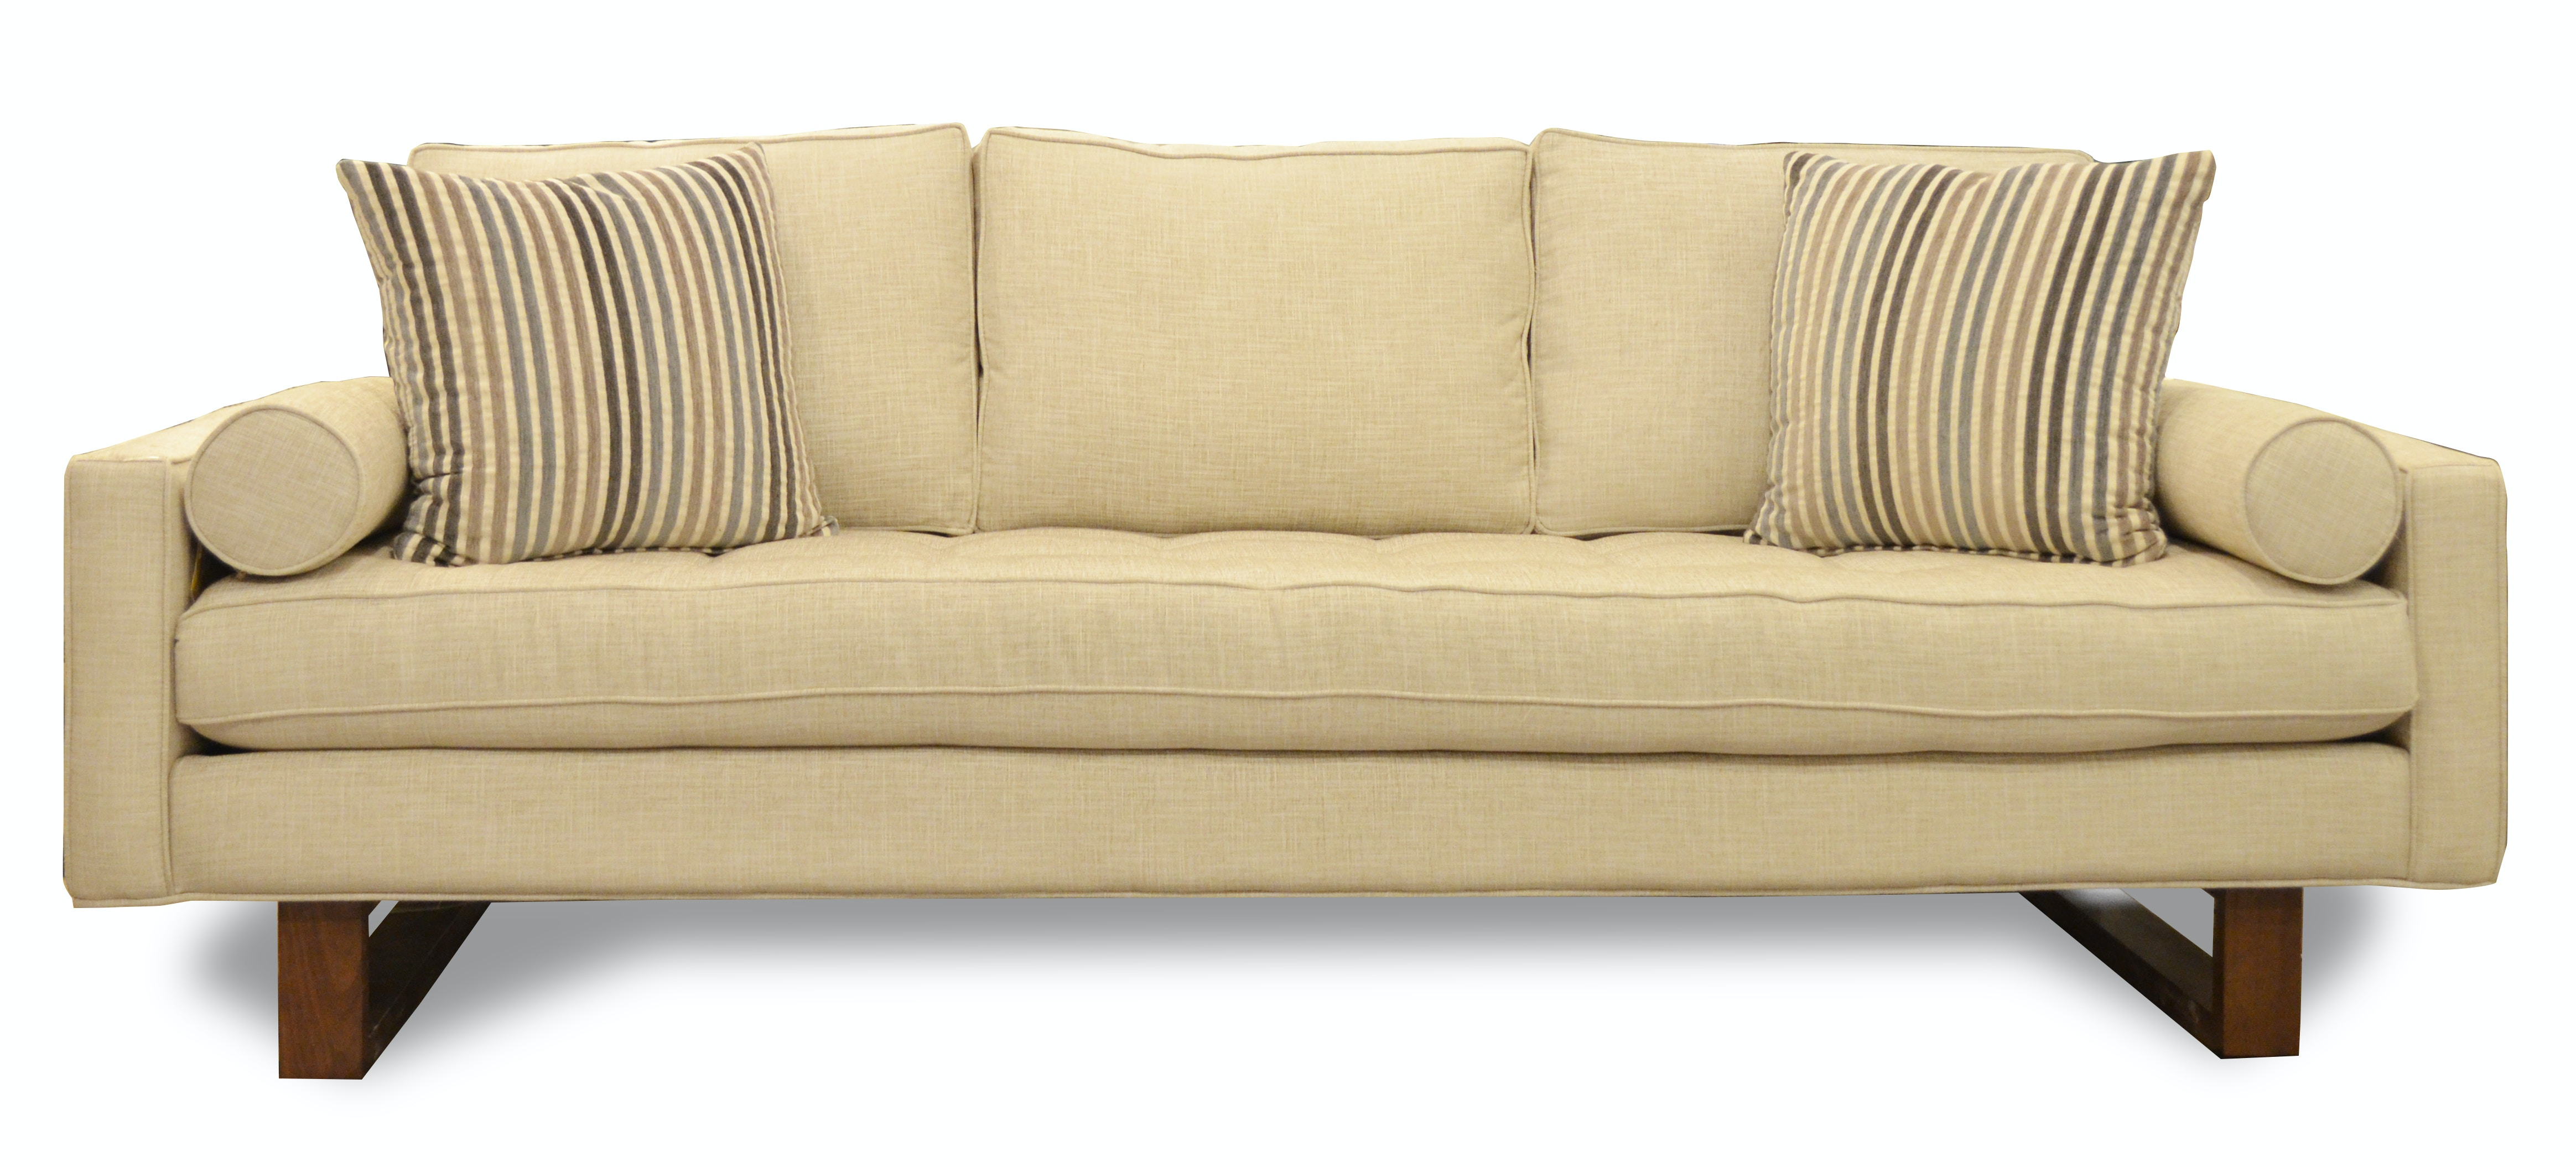 Jonathan Louis International Bennett Sofa 529146